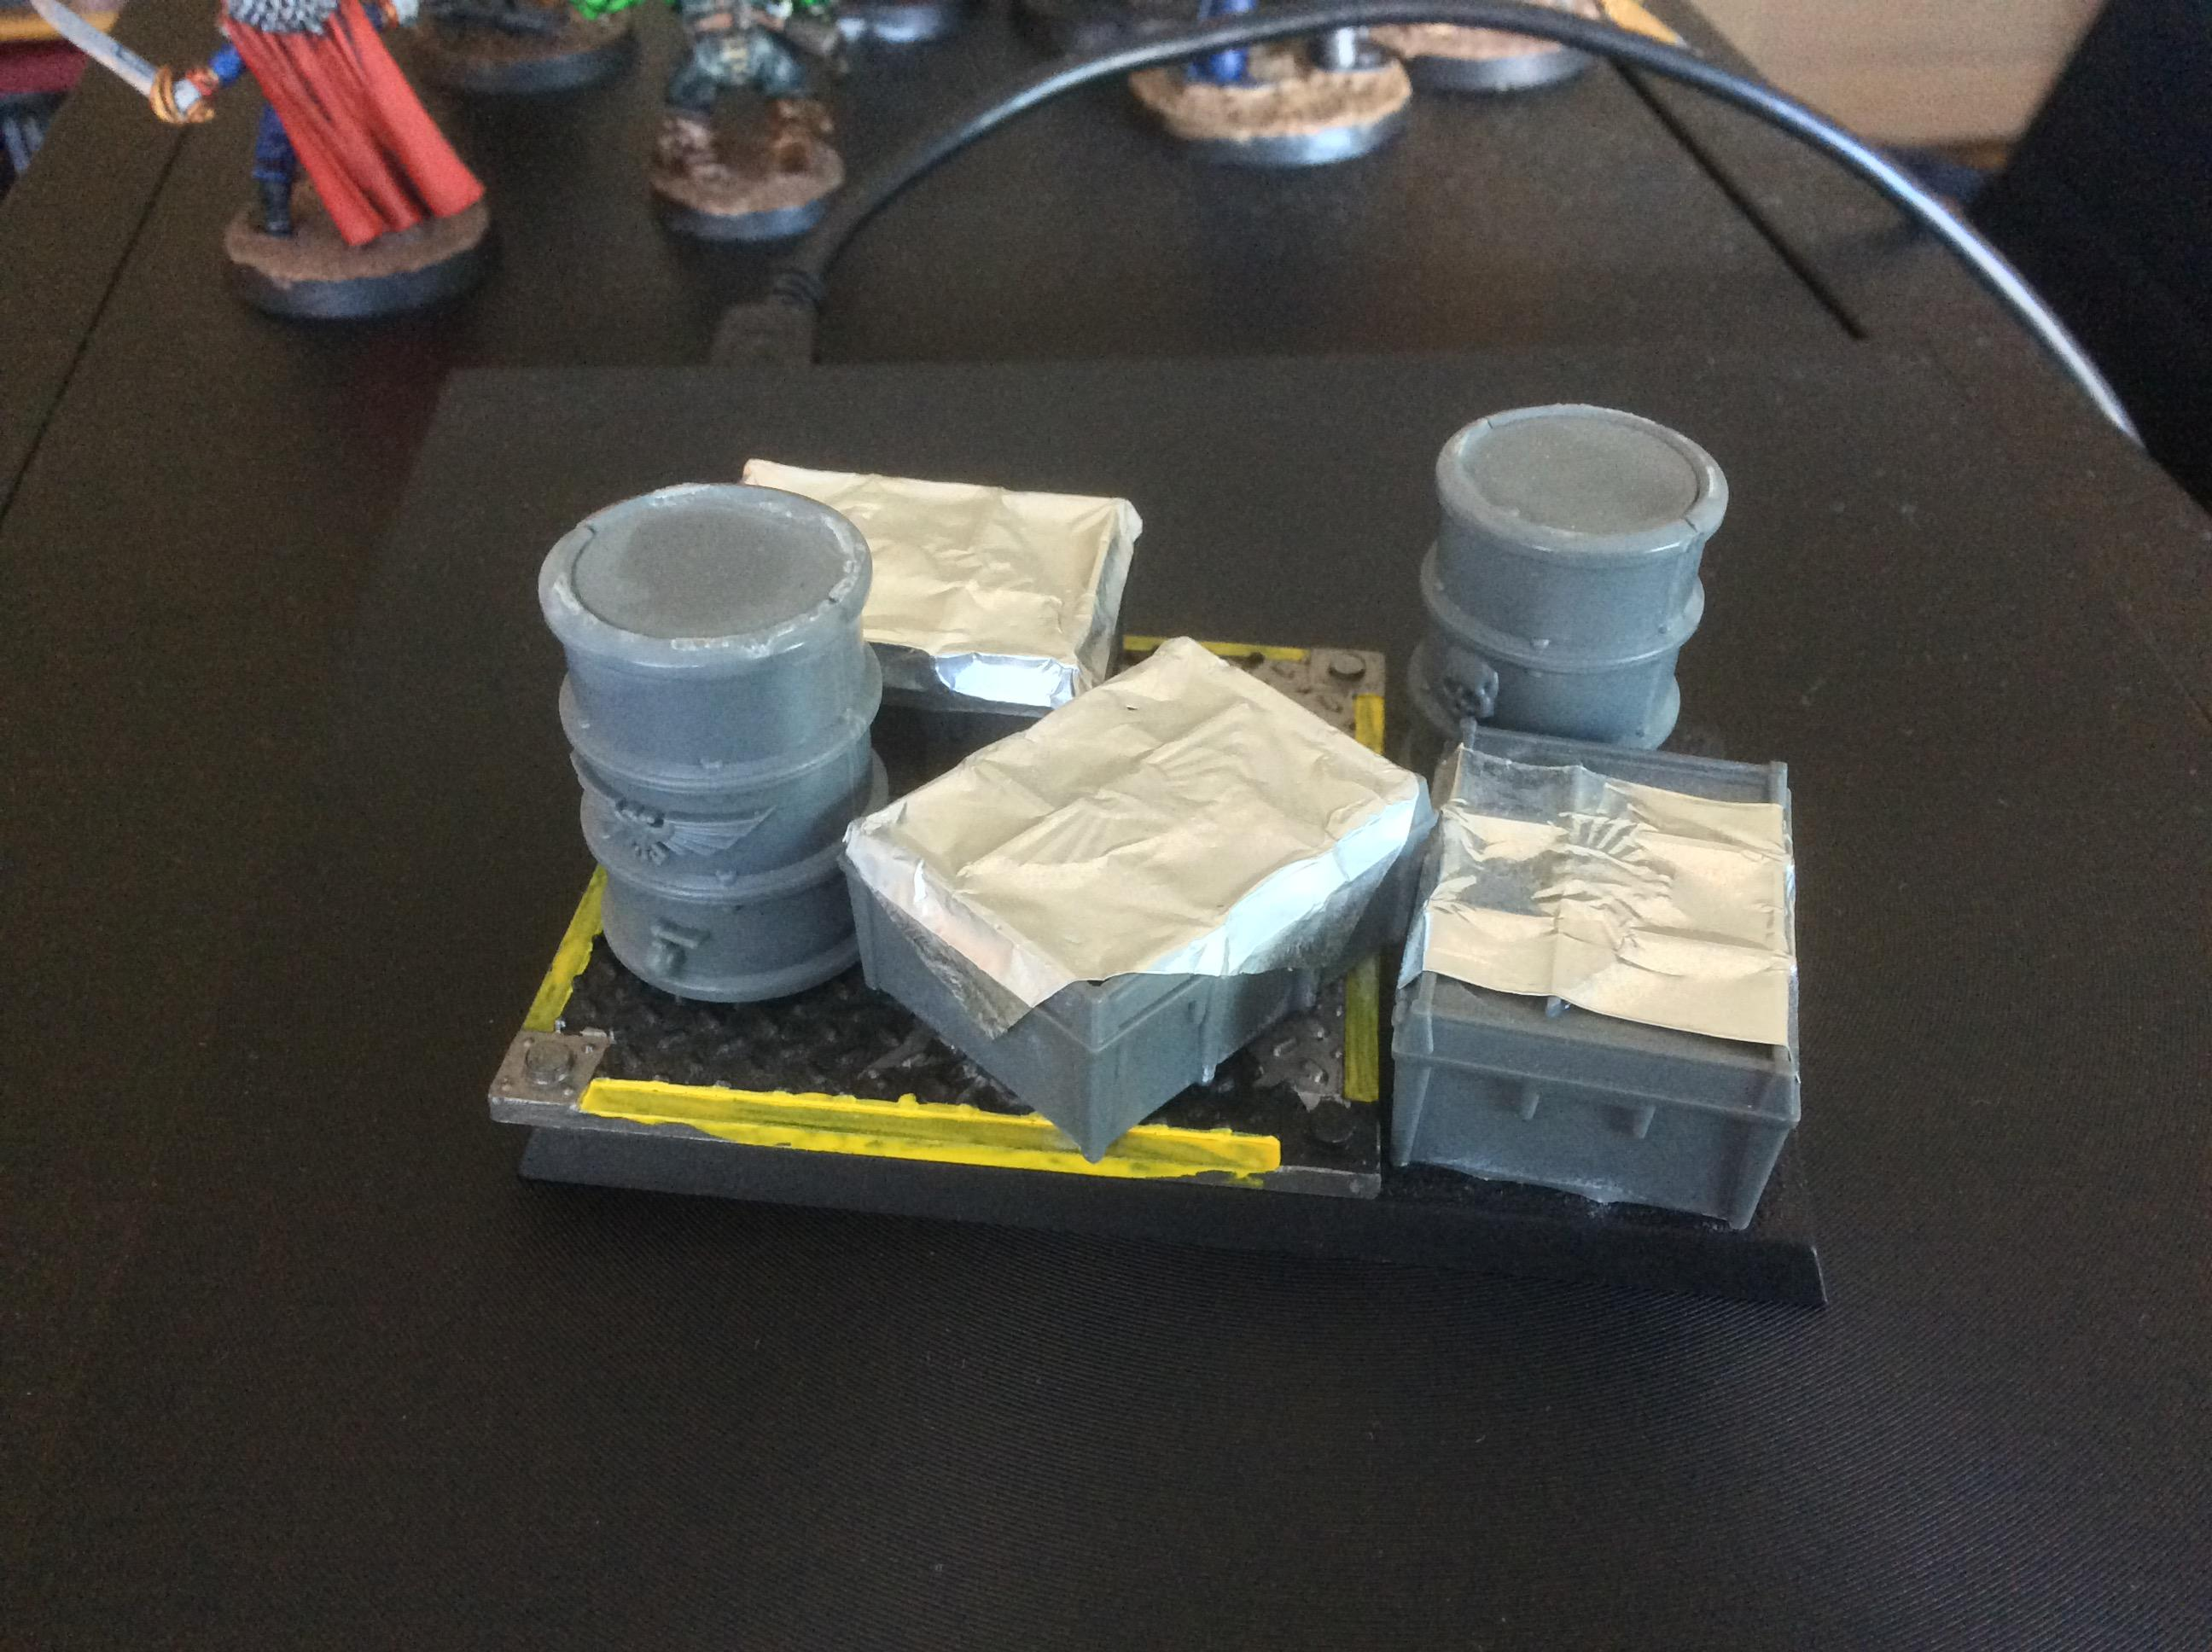 Supplies objective marker (WIP)